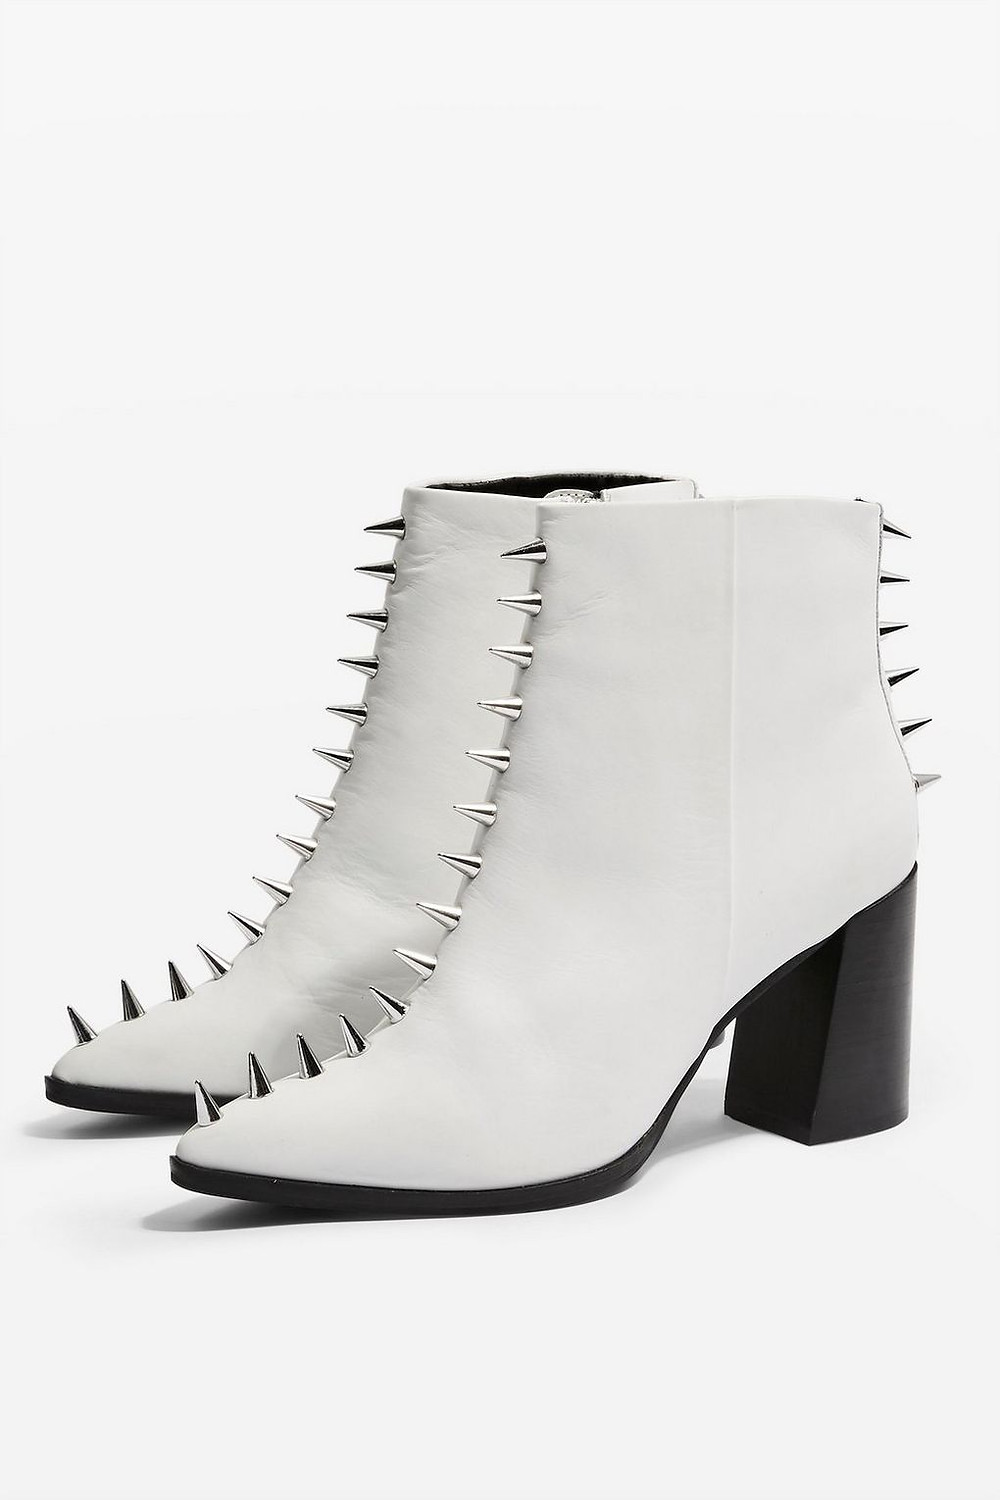 HEX Studded Boots $150